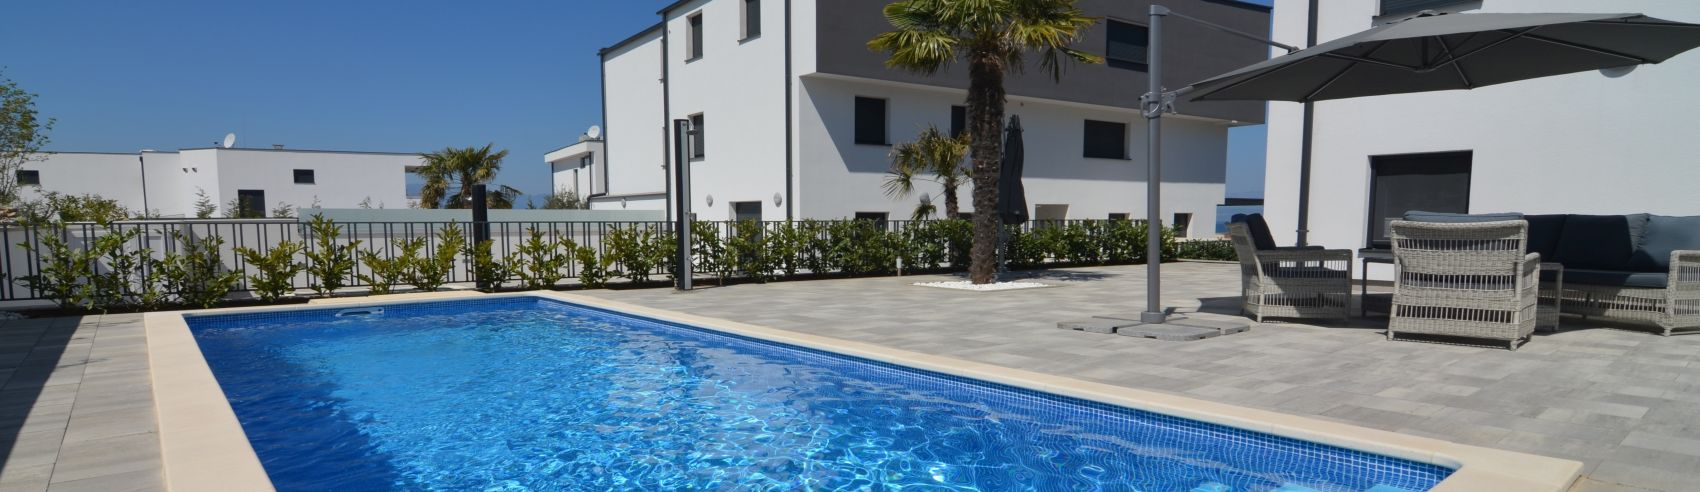 EXCLUSIVE APARTMENT WITH POOL, GARDEN AND SEA VIEW, IN ATTRACTIVE LOCATION!